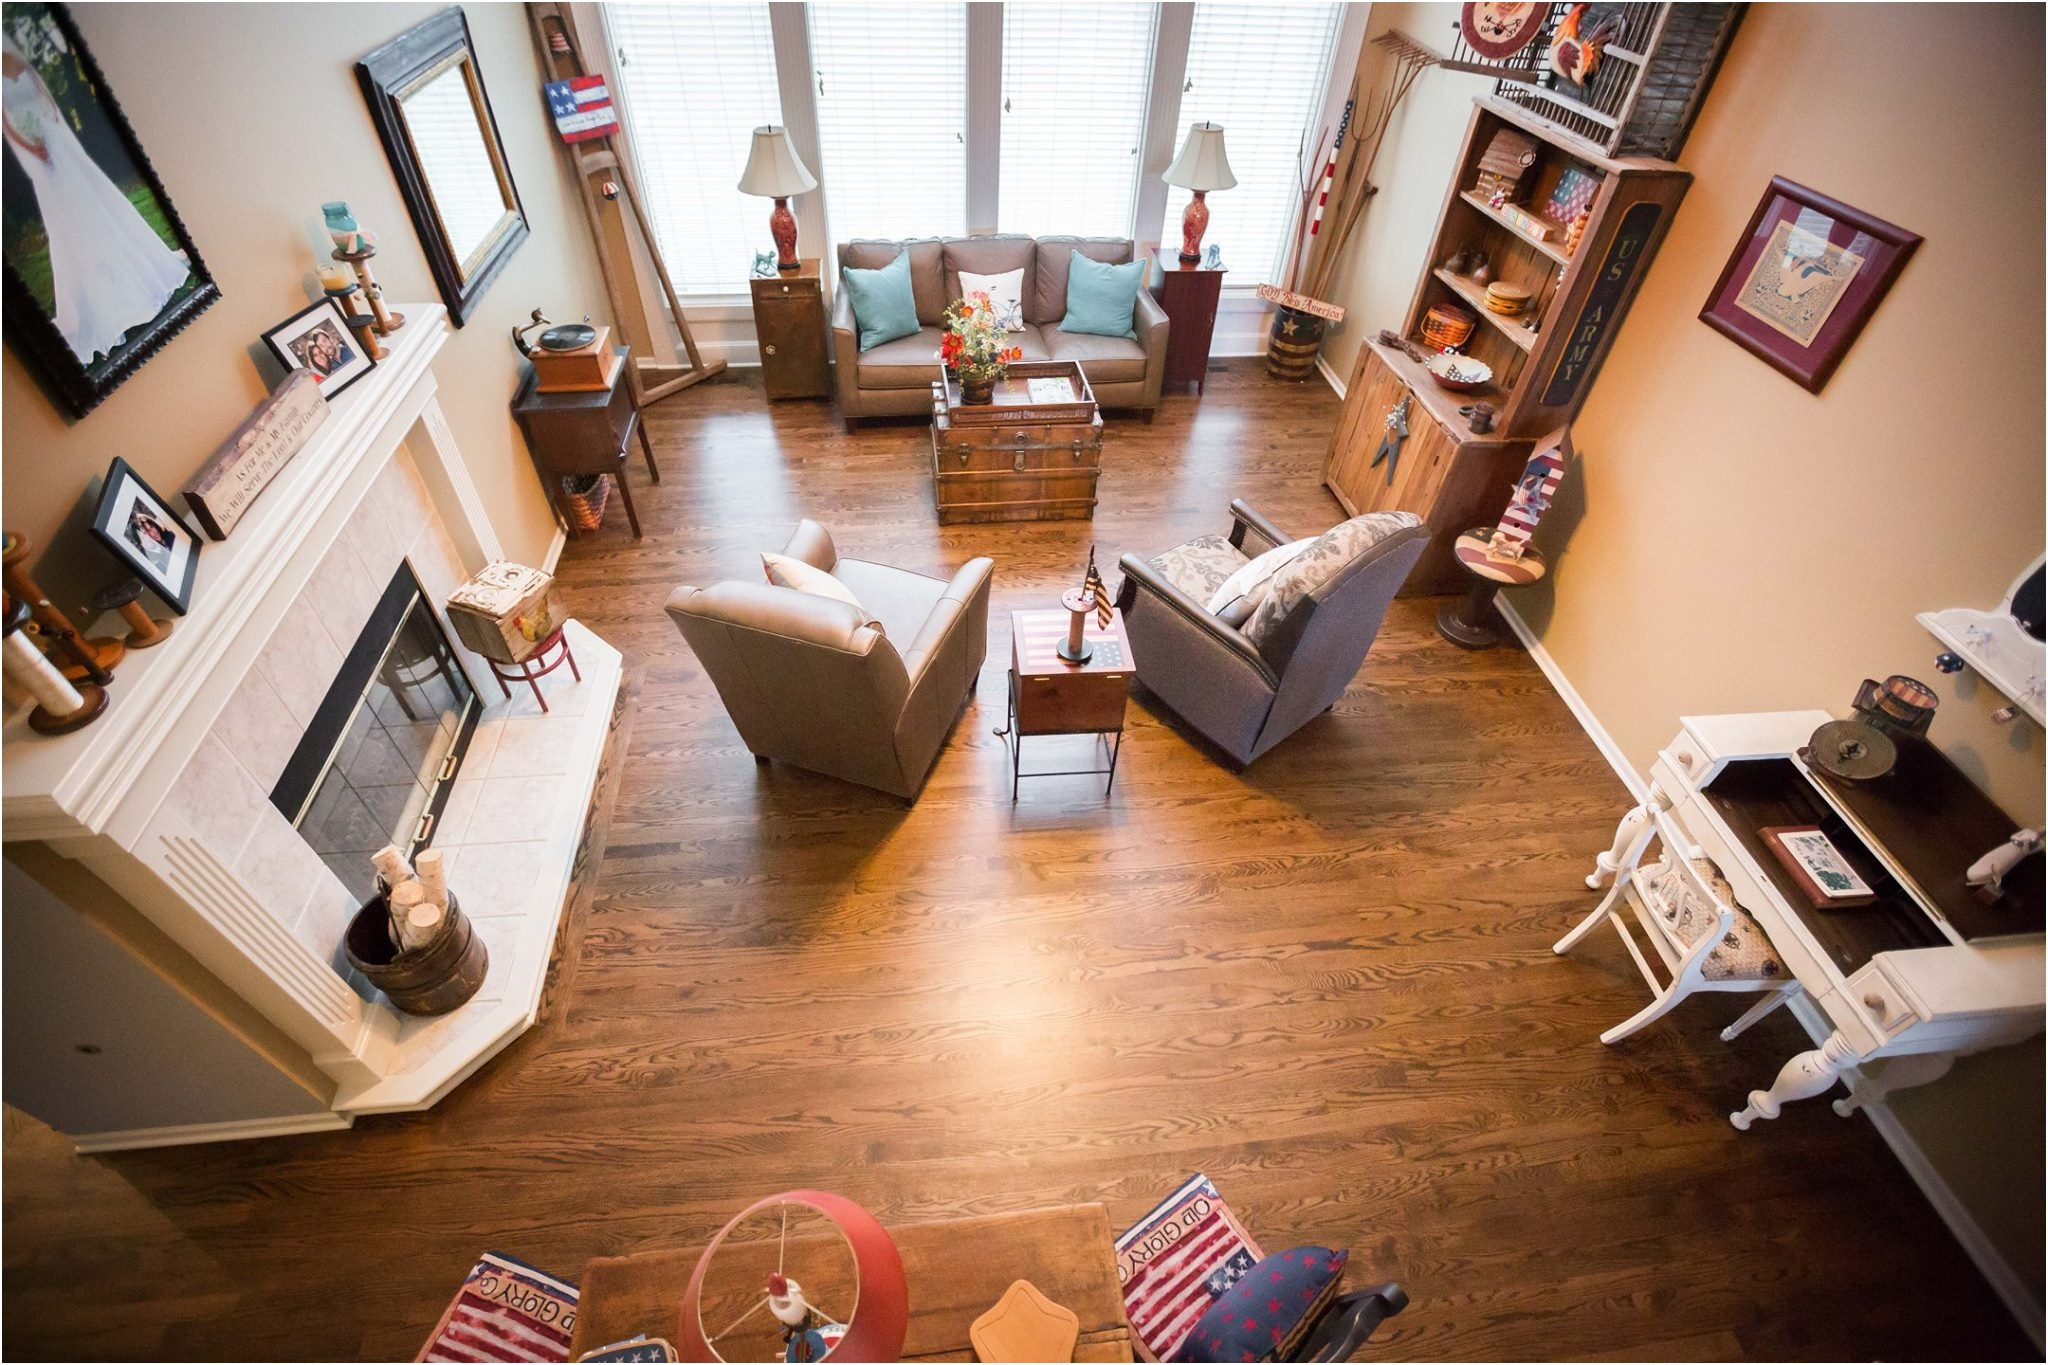 Hardwood Floor Refinishing atlanta Ga Of tongue and Groove Hardwood Flooring Flooring Design Intended for Articles Rippnfinish Hardwood Floor Refinishing